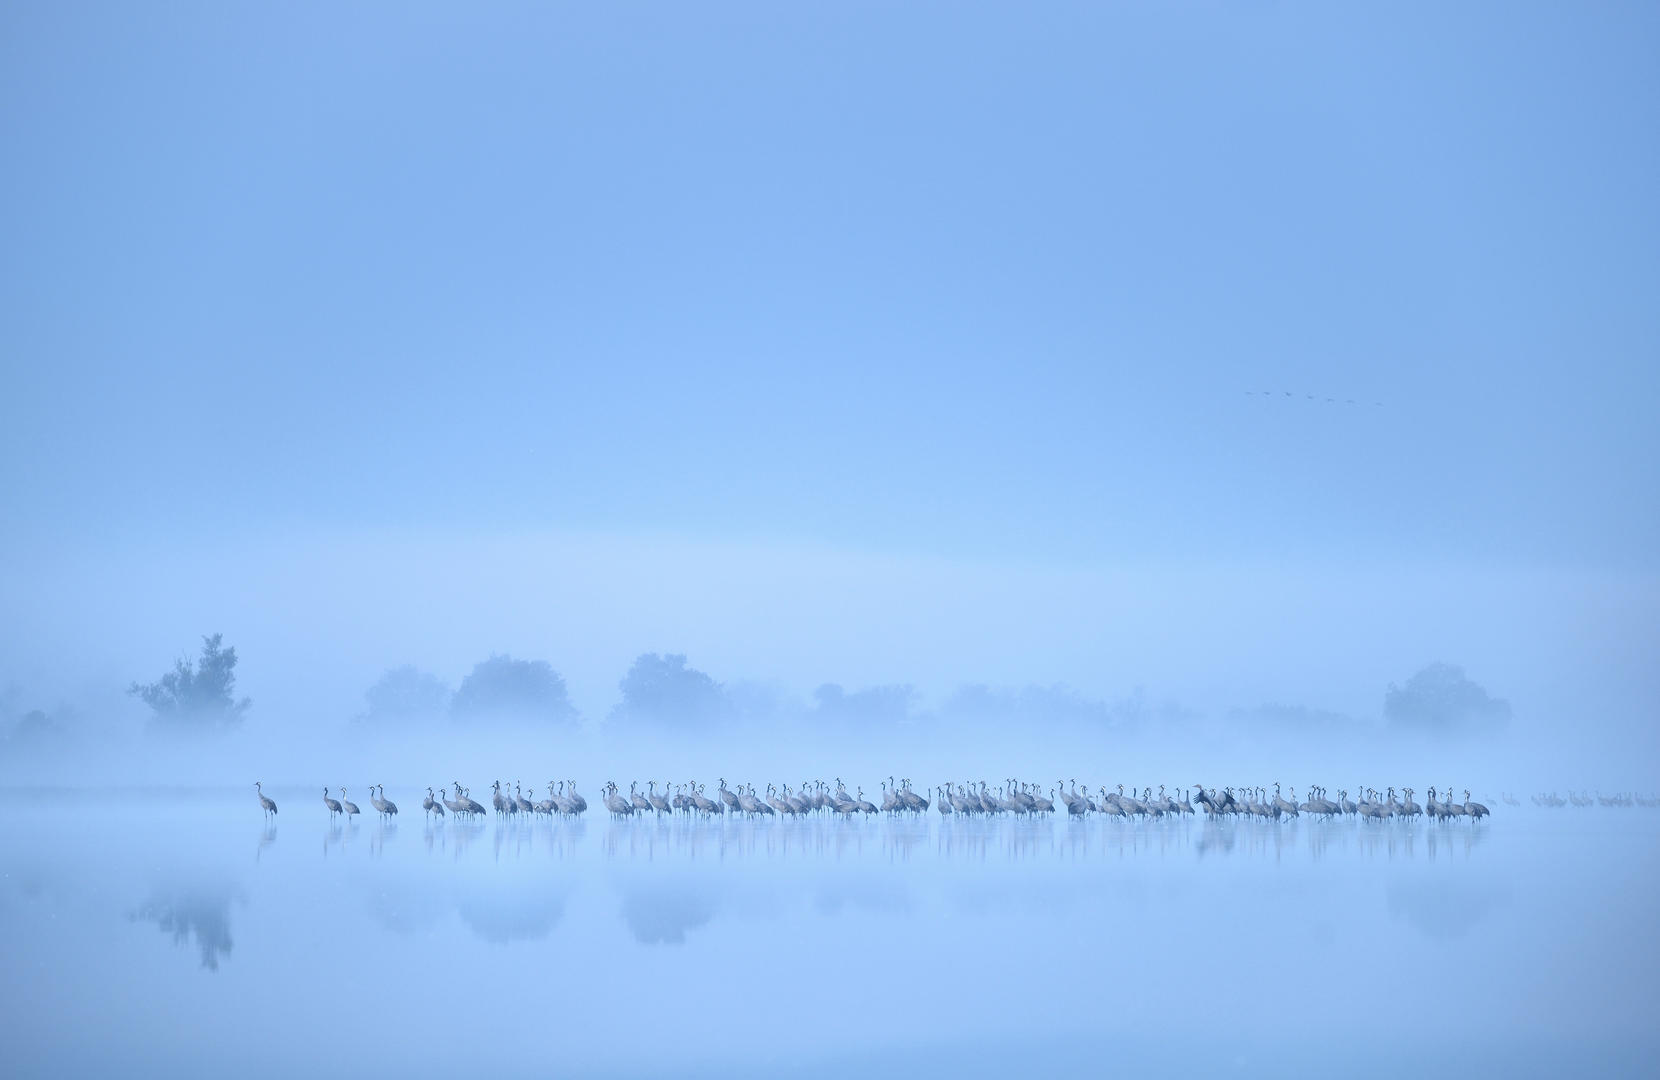 Birds in the Environment, silver. Crane flock misty lake by Piotr Chara.